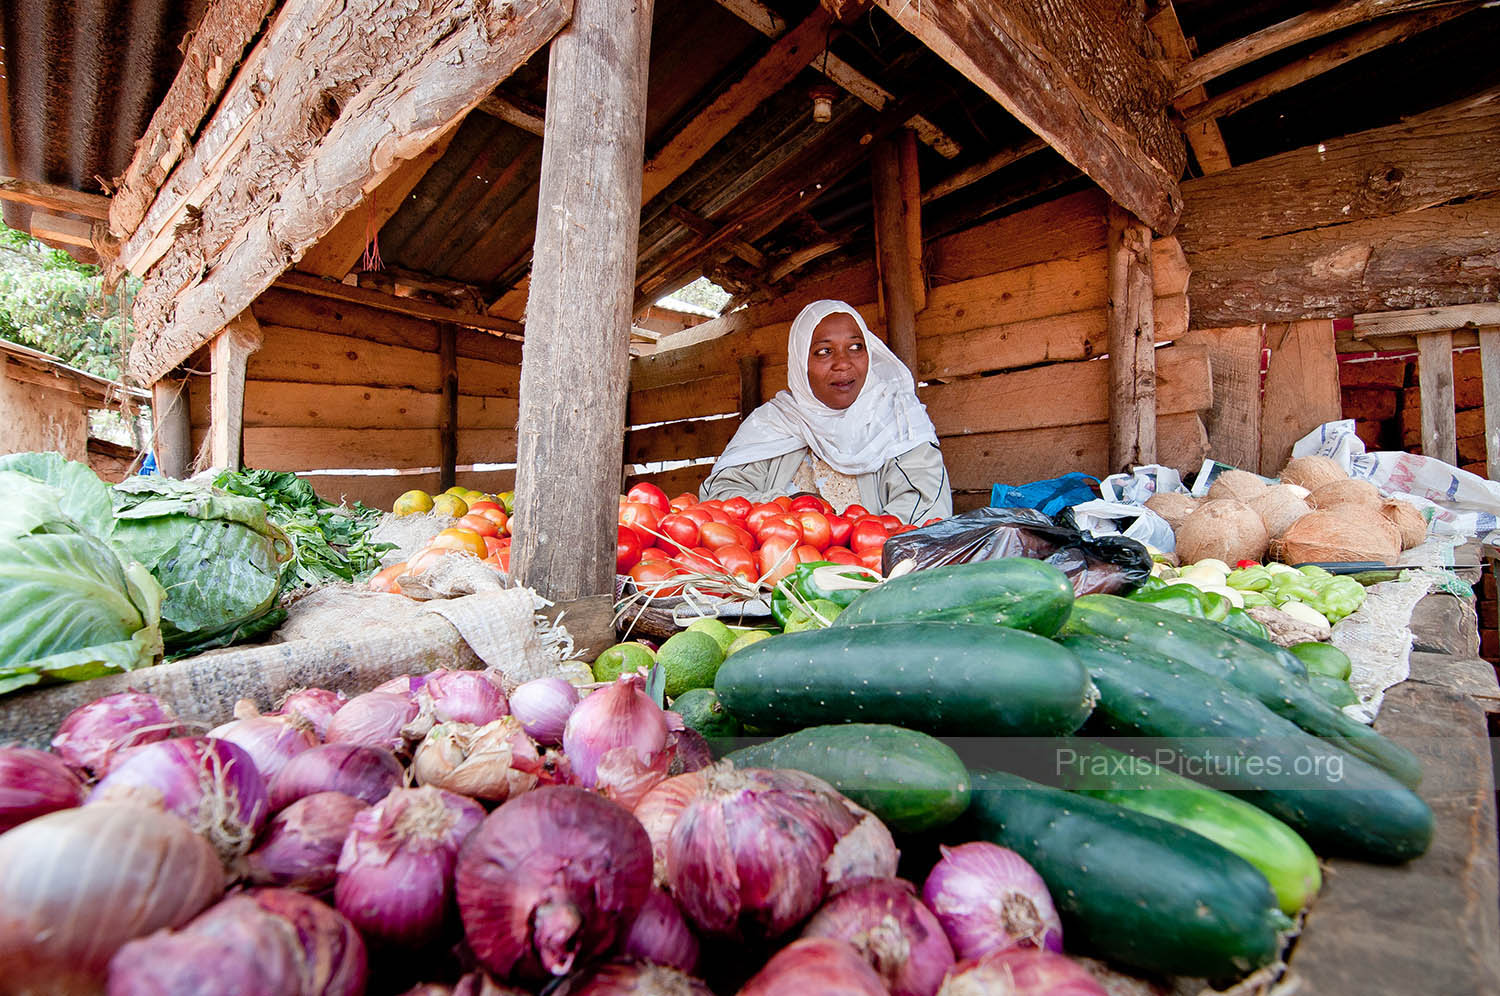 FARAHA - Faraha sells vegetables in the market in Lushoto thanks to a small start-up loan from her local VICOBA group.